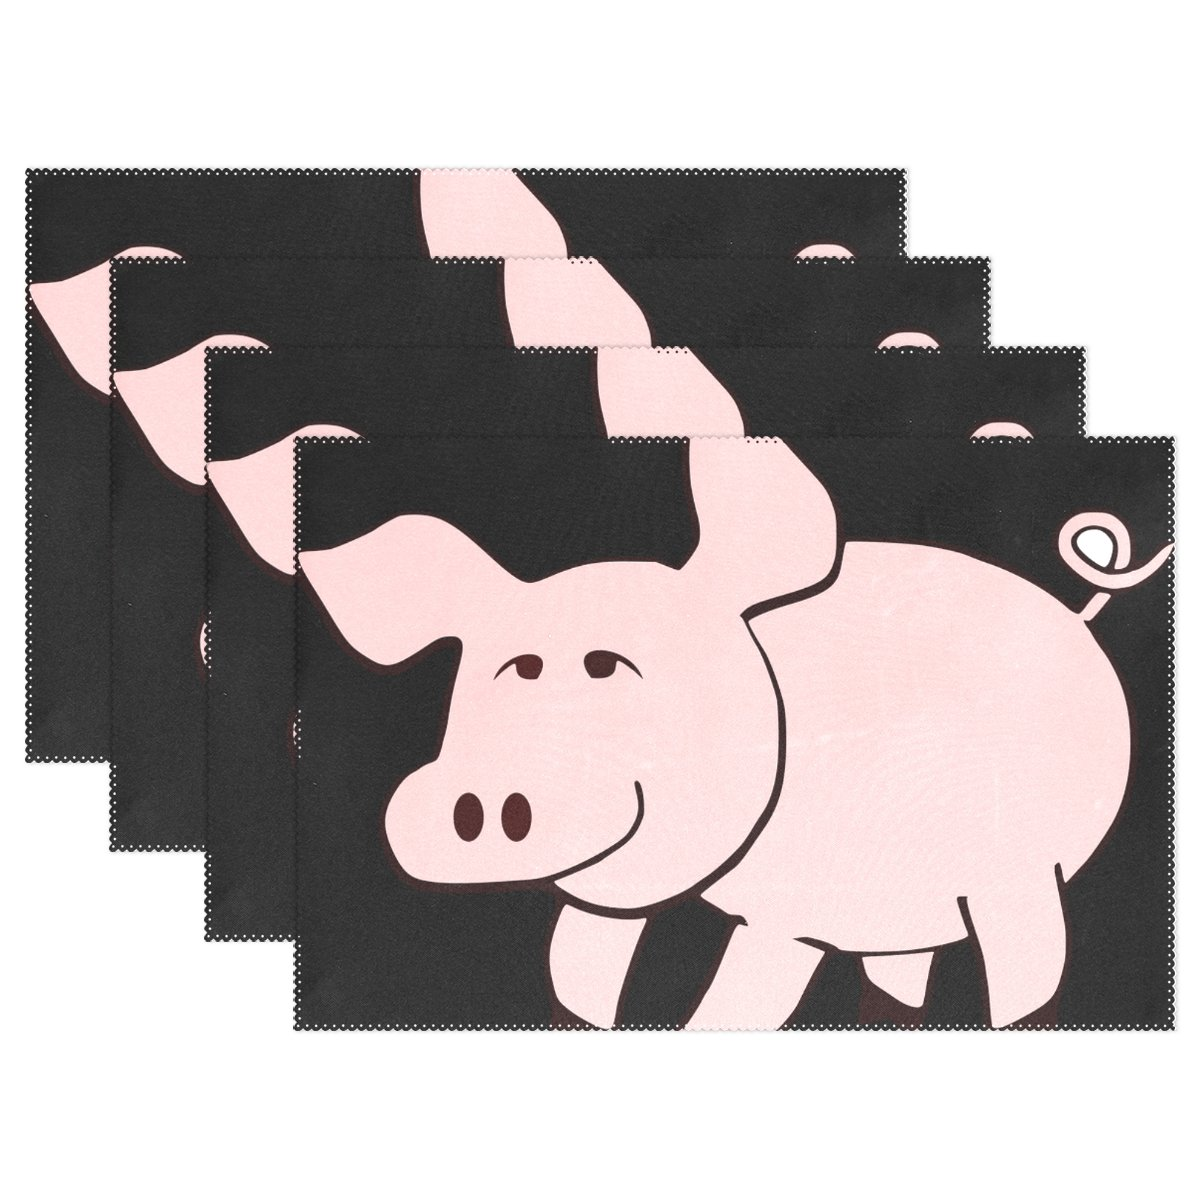 WIEDLKL Animal Mammal Pig Pink Placemats Set Of 4 Heat Insulation Stain Resistant For Dining Table Durable Non-slip Kitchen Table Place Mats